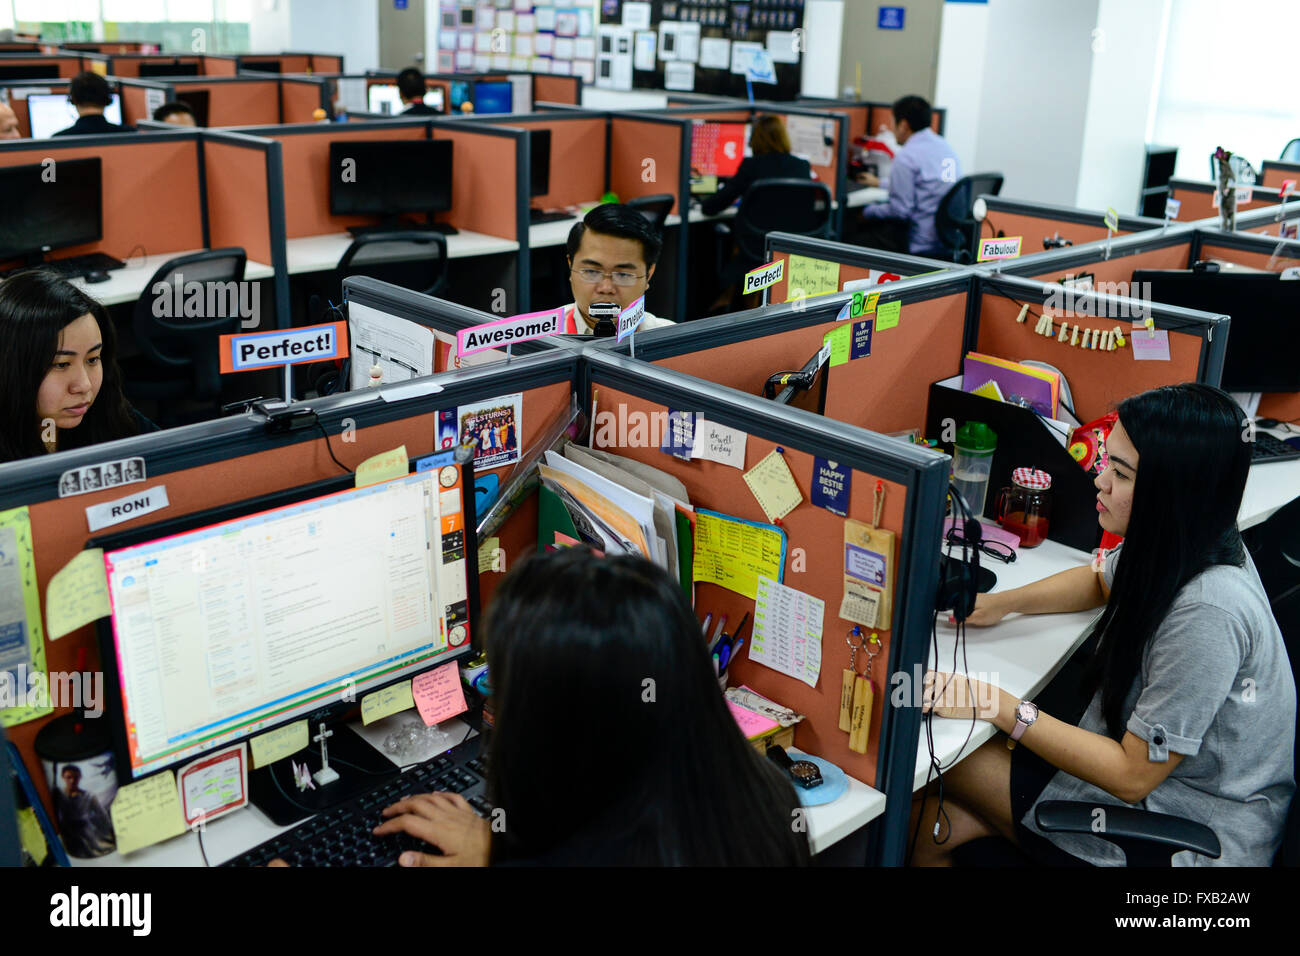 PHILIPPINES, Manila, Rockwell Business Center, Pasig City, KPO Knowledge Process Outsorcing, callcenter von Global Stock Photo